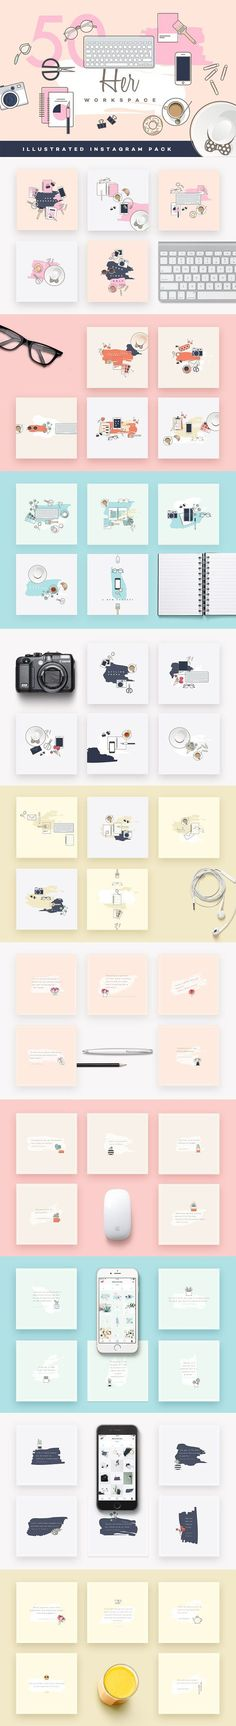 Her Workspace illustrated Insta pack   @creativework247